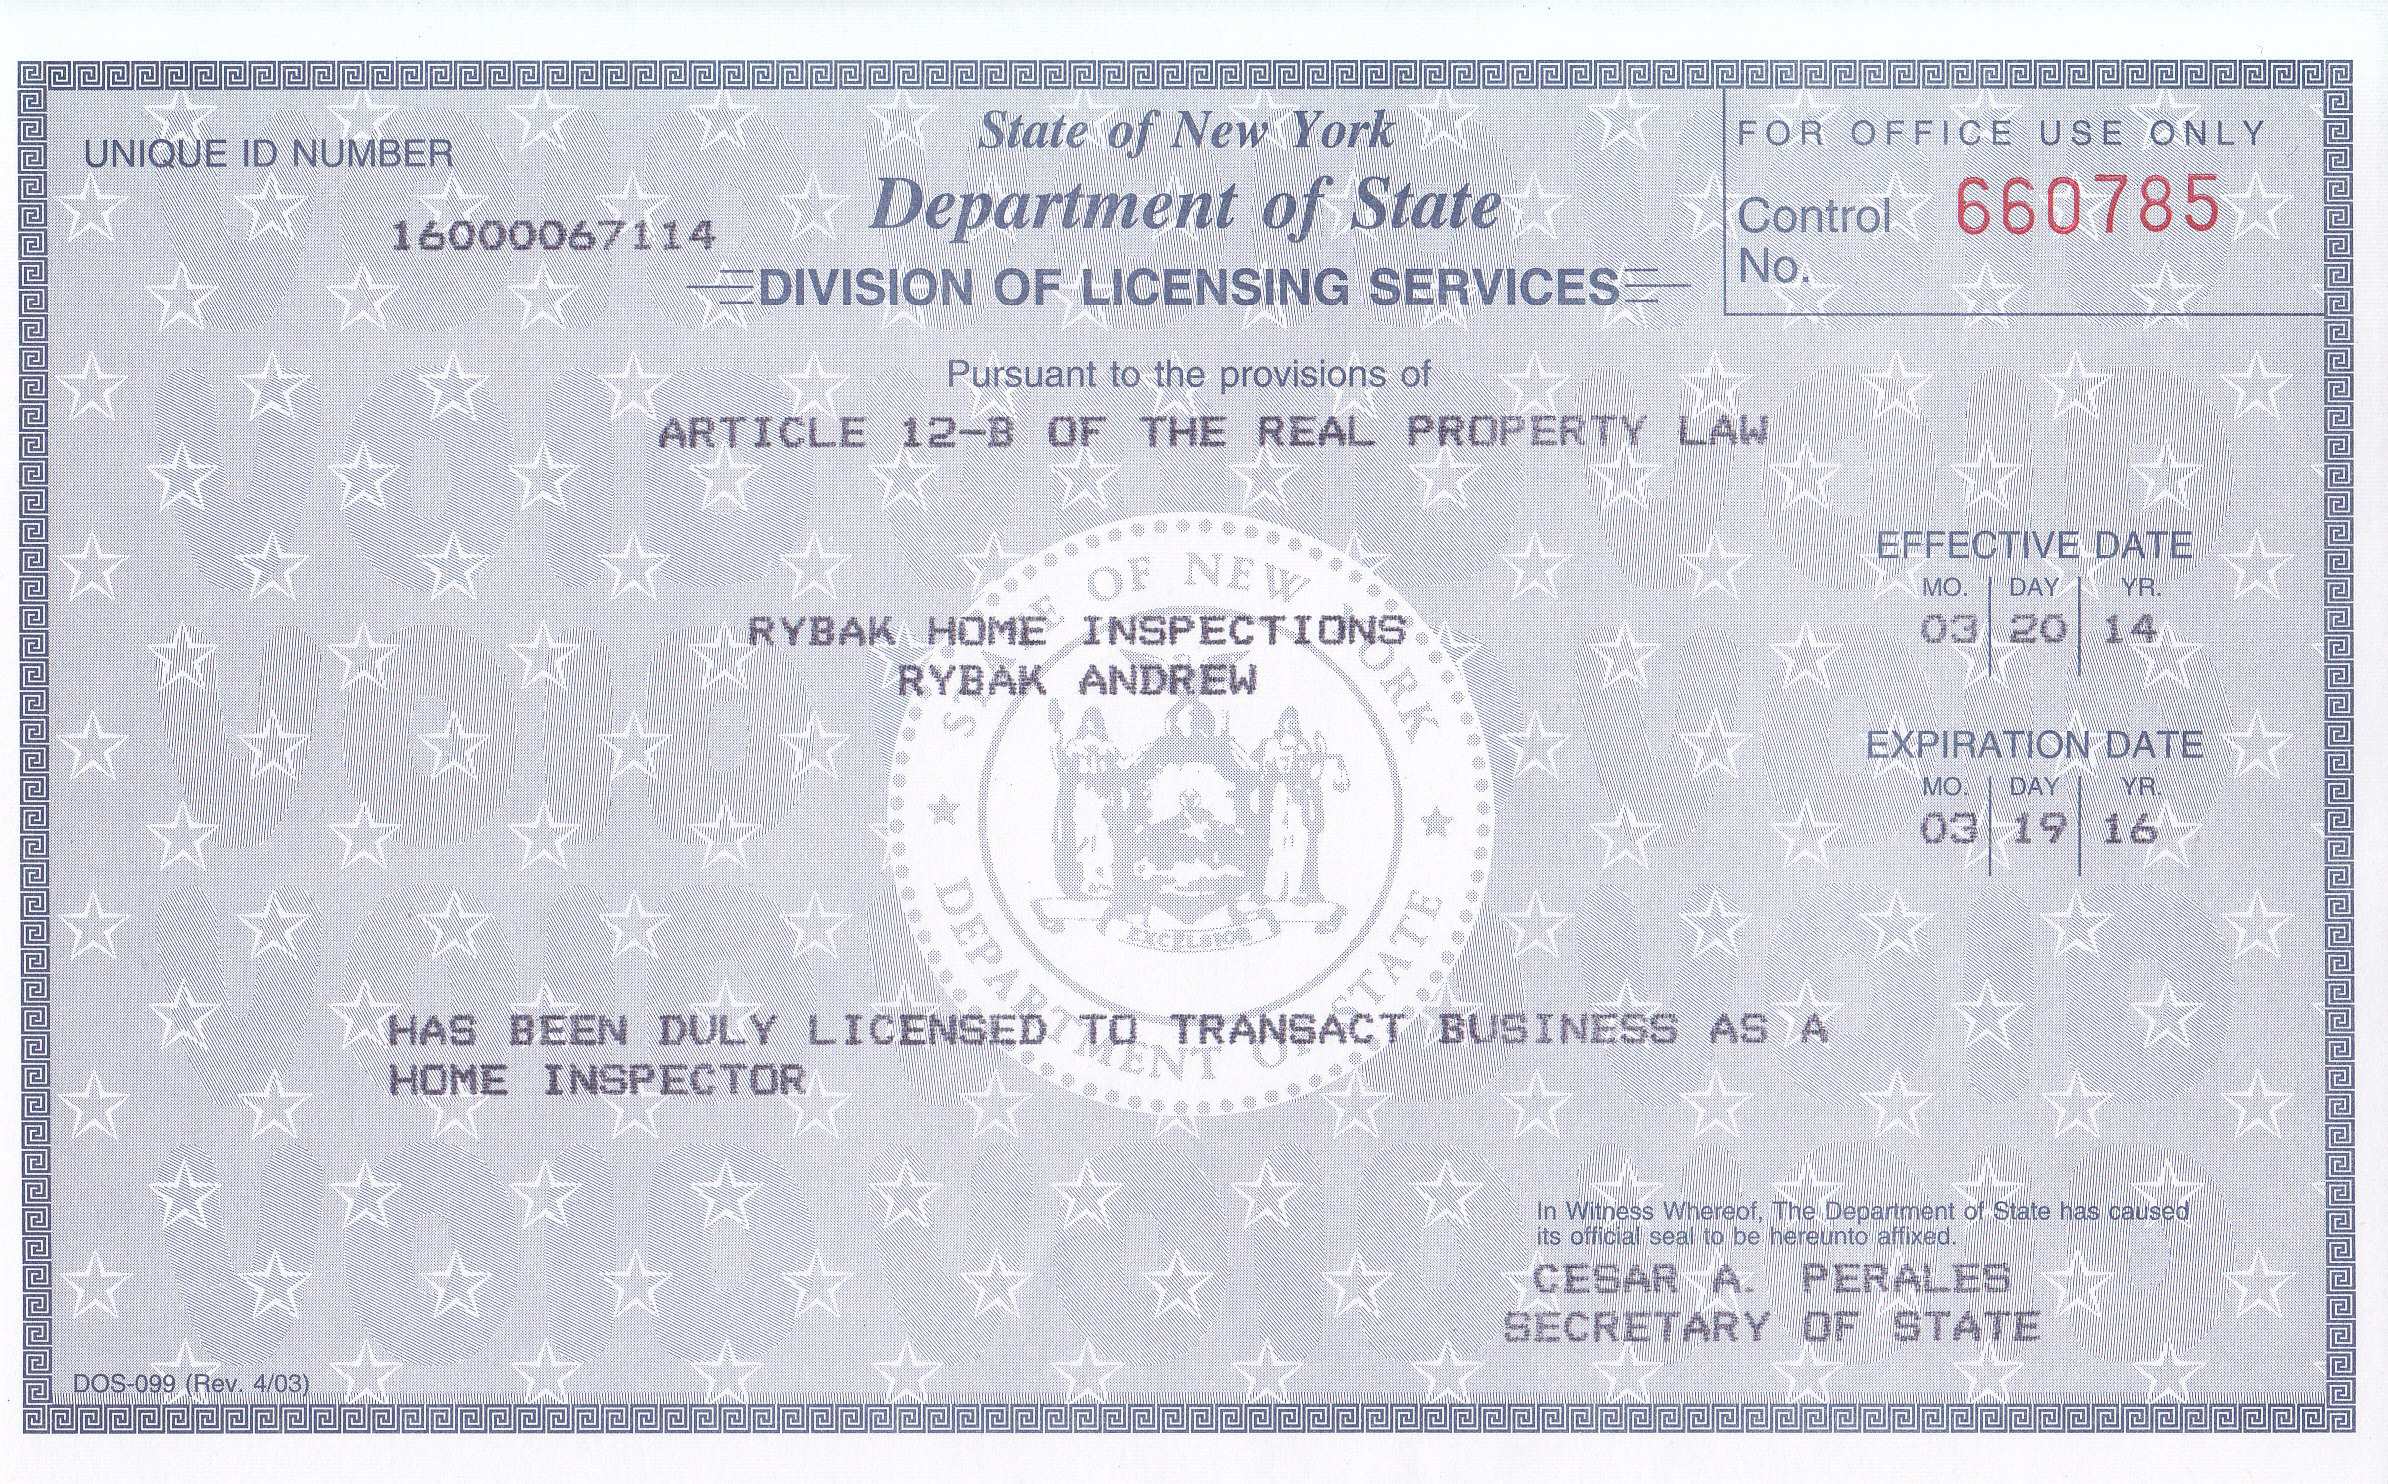 Rybak Home Inspections About Us